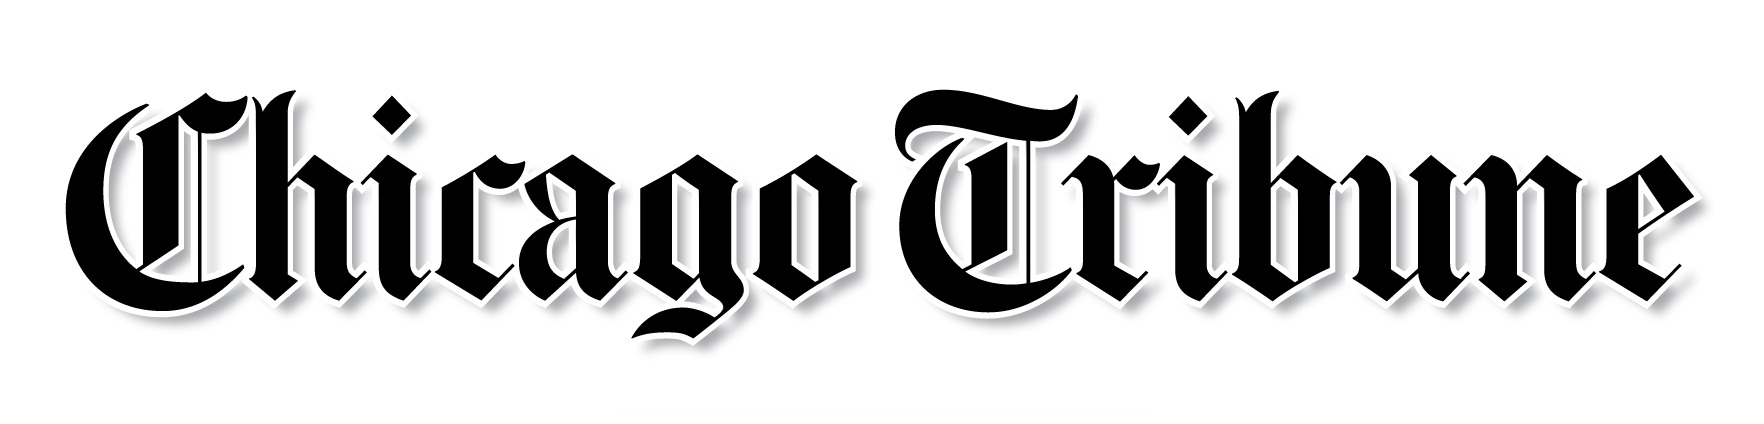 Image result for Chicago Tribune